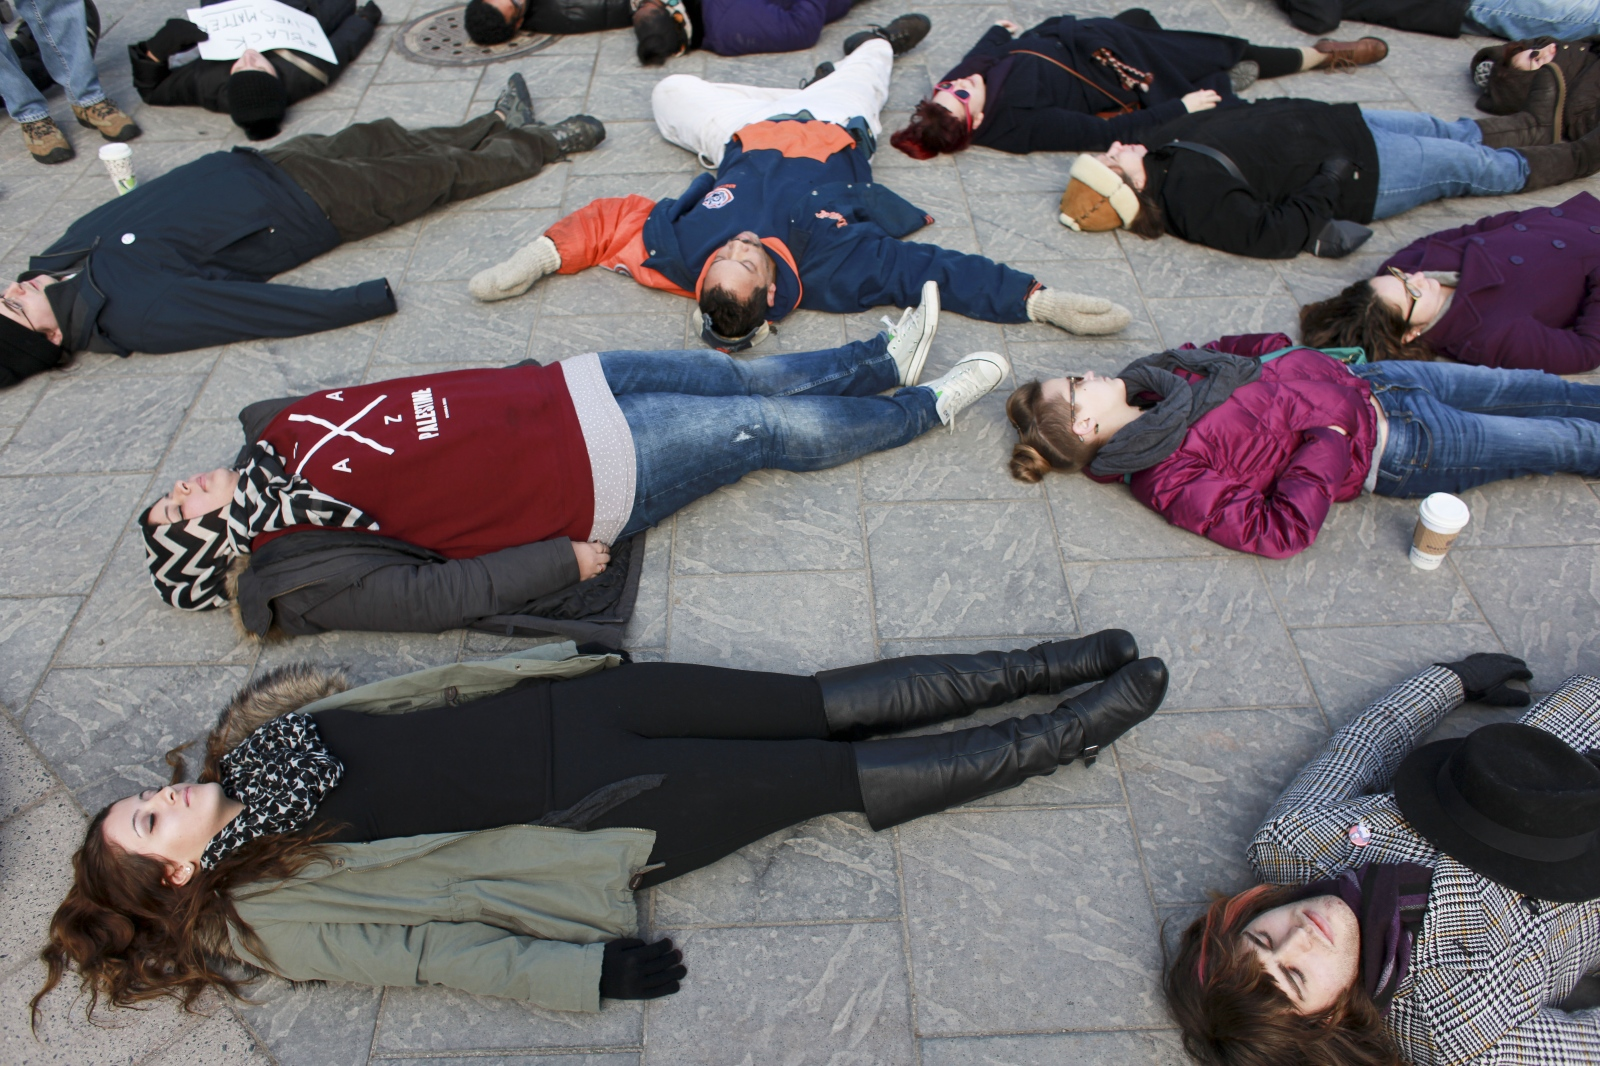 Protestors stage a 'die-in' on Thursday afternoon at Campus Martius Park in downtown Detroit in a rally over the non-indictment of Eric Garner, a black New York man who died during a police arrest.c